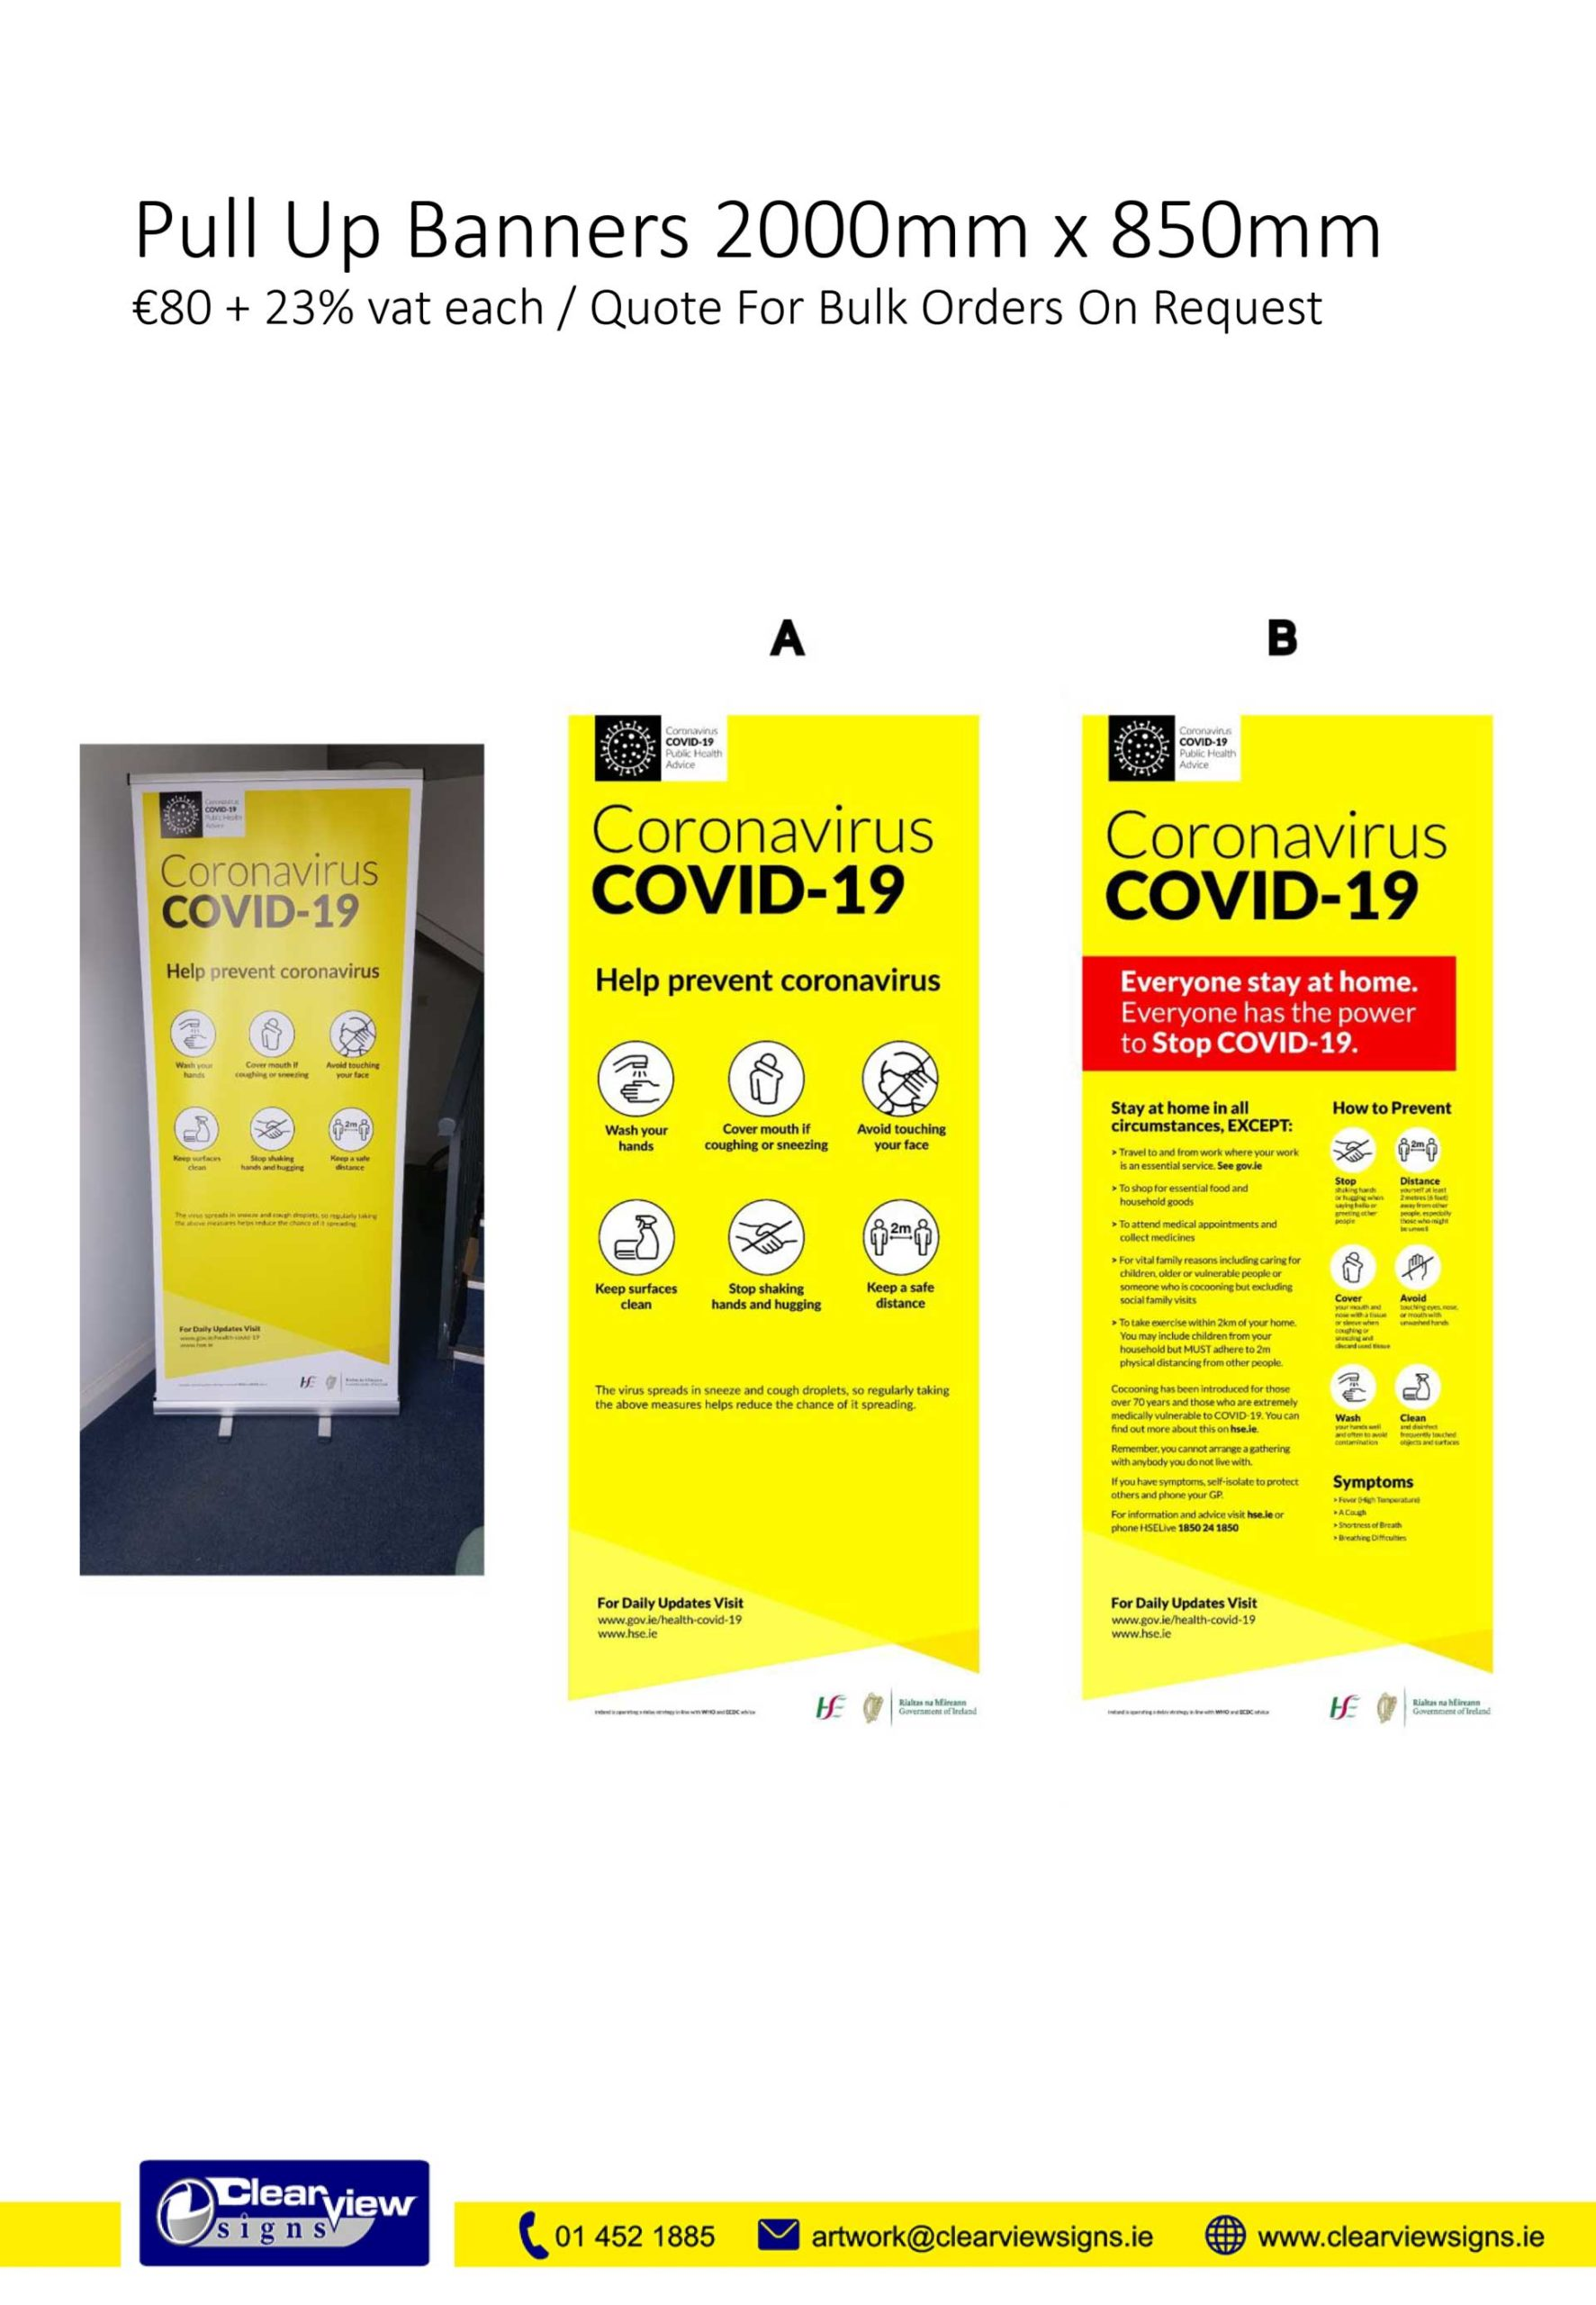 Pull-Up-Banners-2000mm-x-850mm